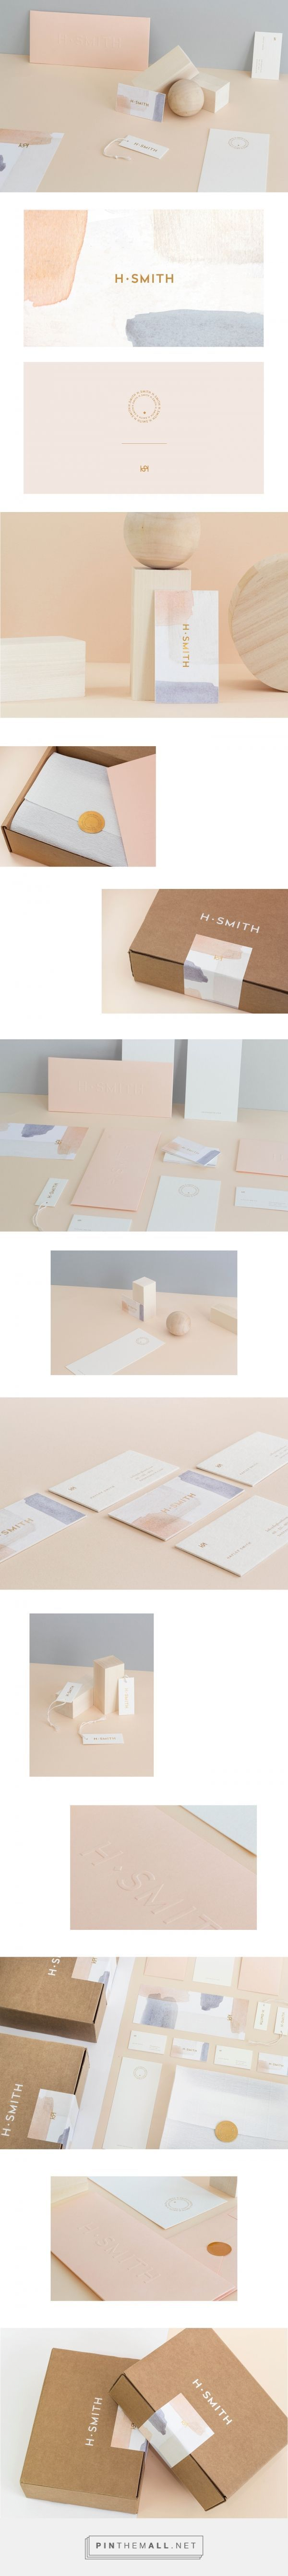 H. Smith Curated Boutique Branding by Kati Forner | Fivestar Branding Agency – Design and Branding Agency & Curated Inspiration Gallery